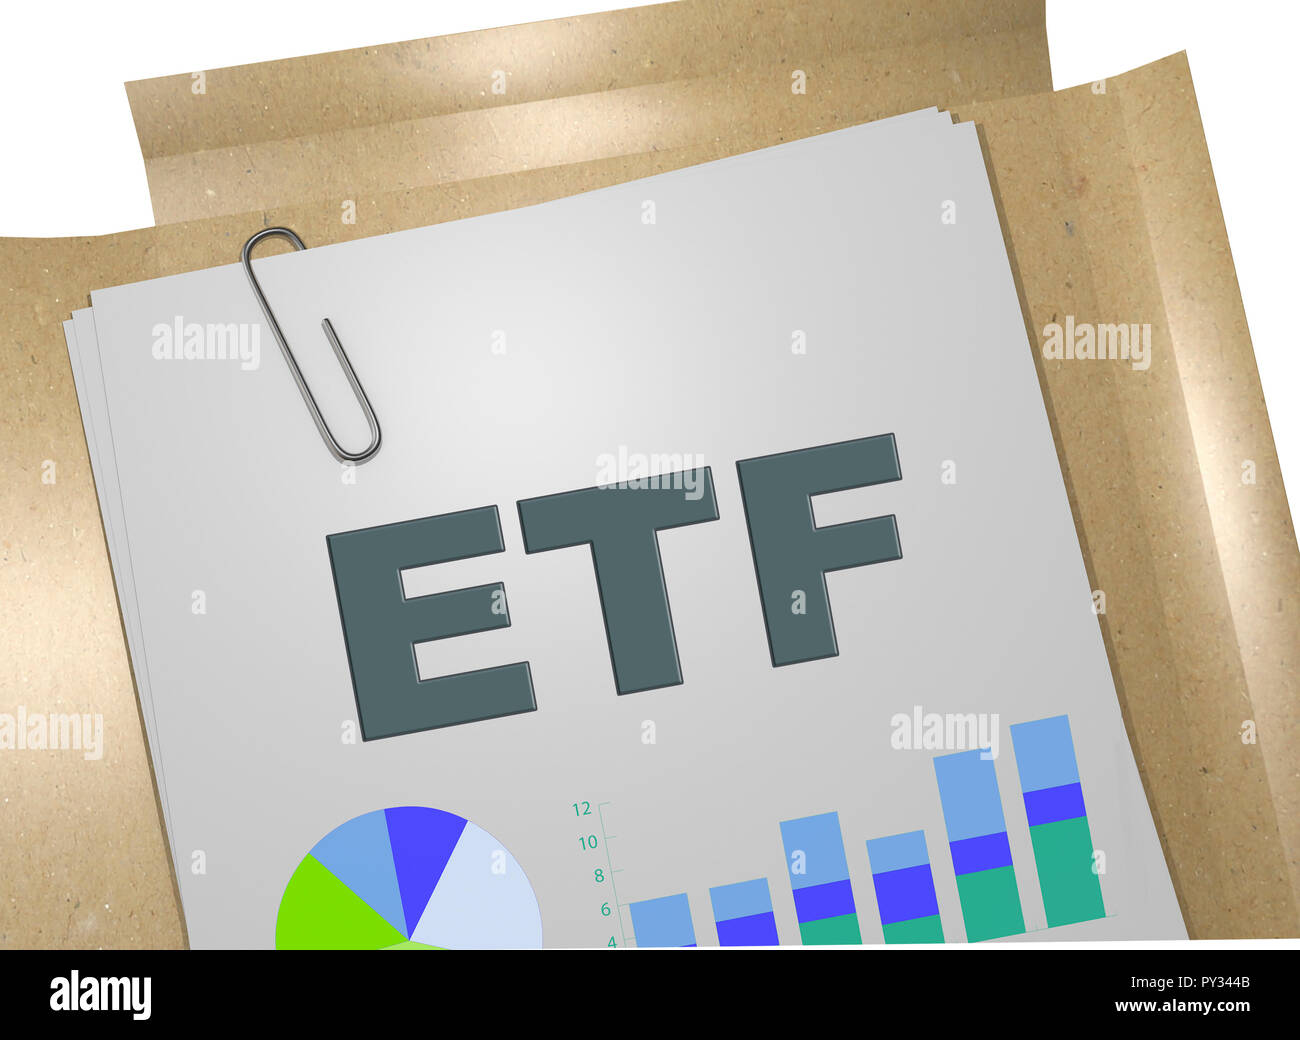 3D illustration of ETF title on business document Stock Photo